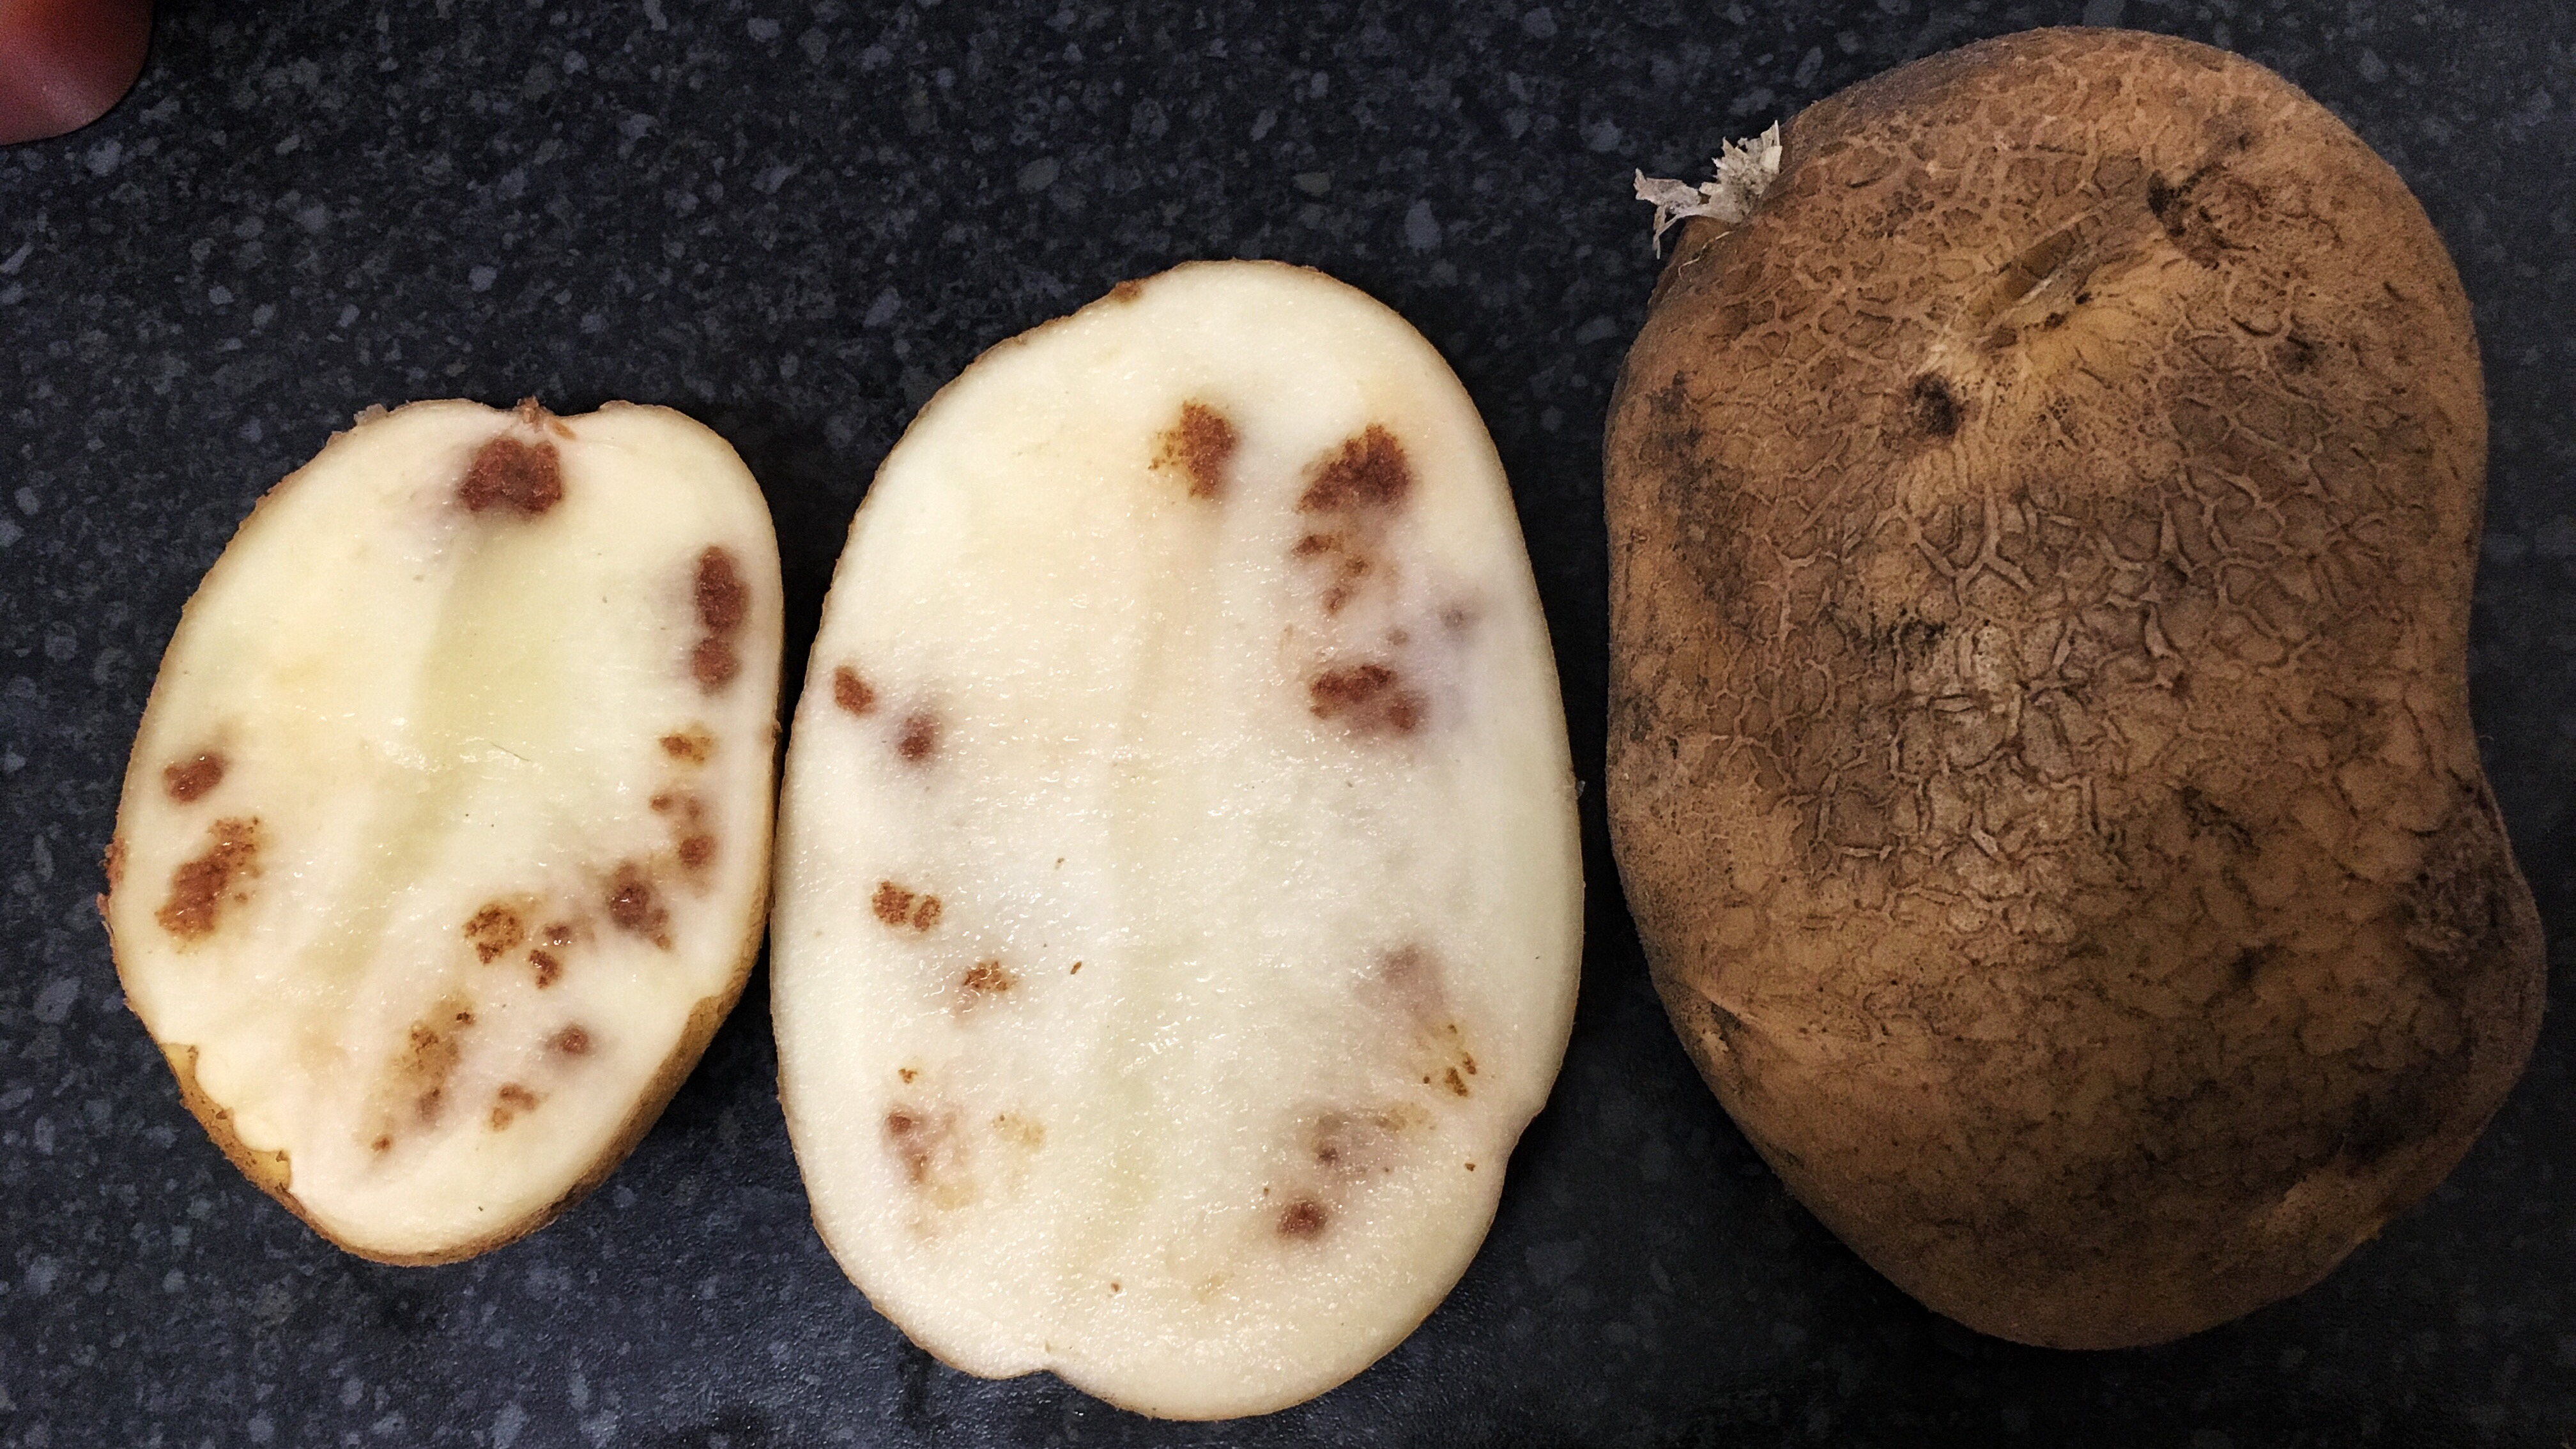 A Home Guard potato sliced in half to reveal inedible brown patches